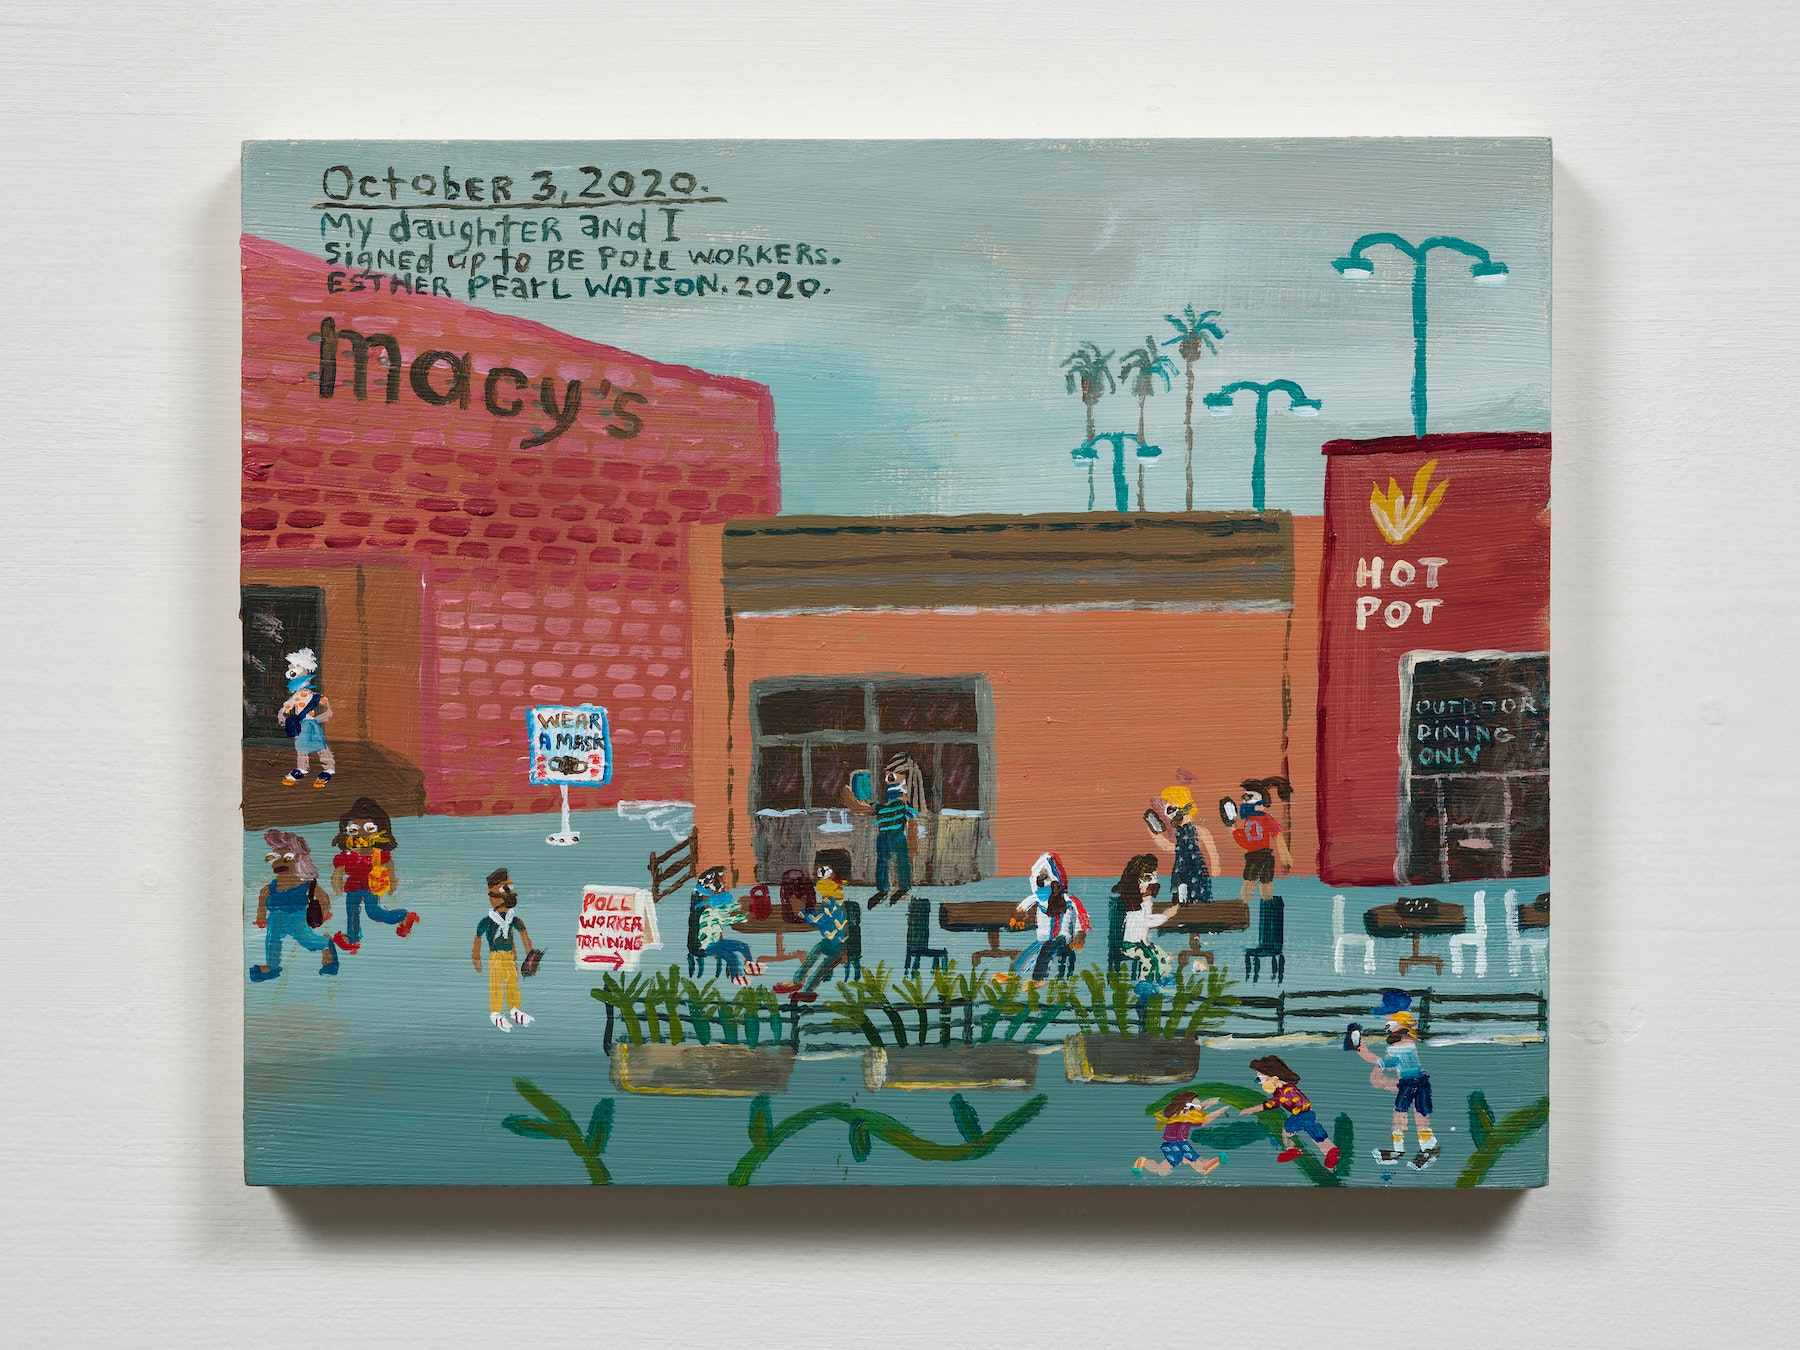 """Esther Pearl Watson """"October 3, Poll Worker Sign Up,"""" 2020 Acrylic with pencil on panel 8 x 10"""" [HxW] (20.32 x 25.4 cm) Inventory #EPW348 Courtesy of the artist and Vielmetter Los Angeles Photo credit: Jeff Mclane"""